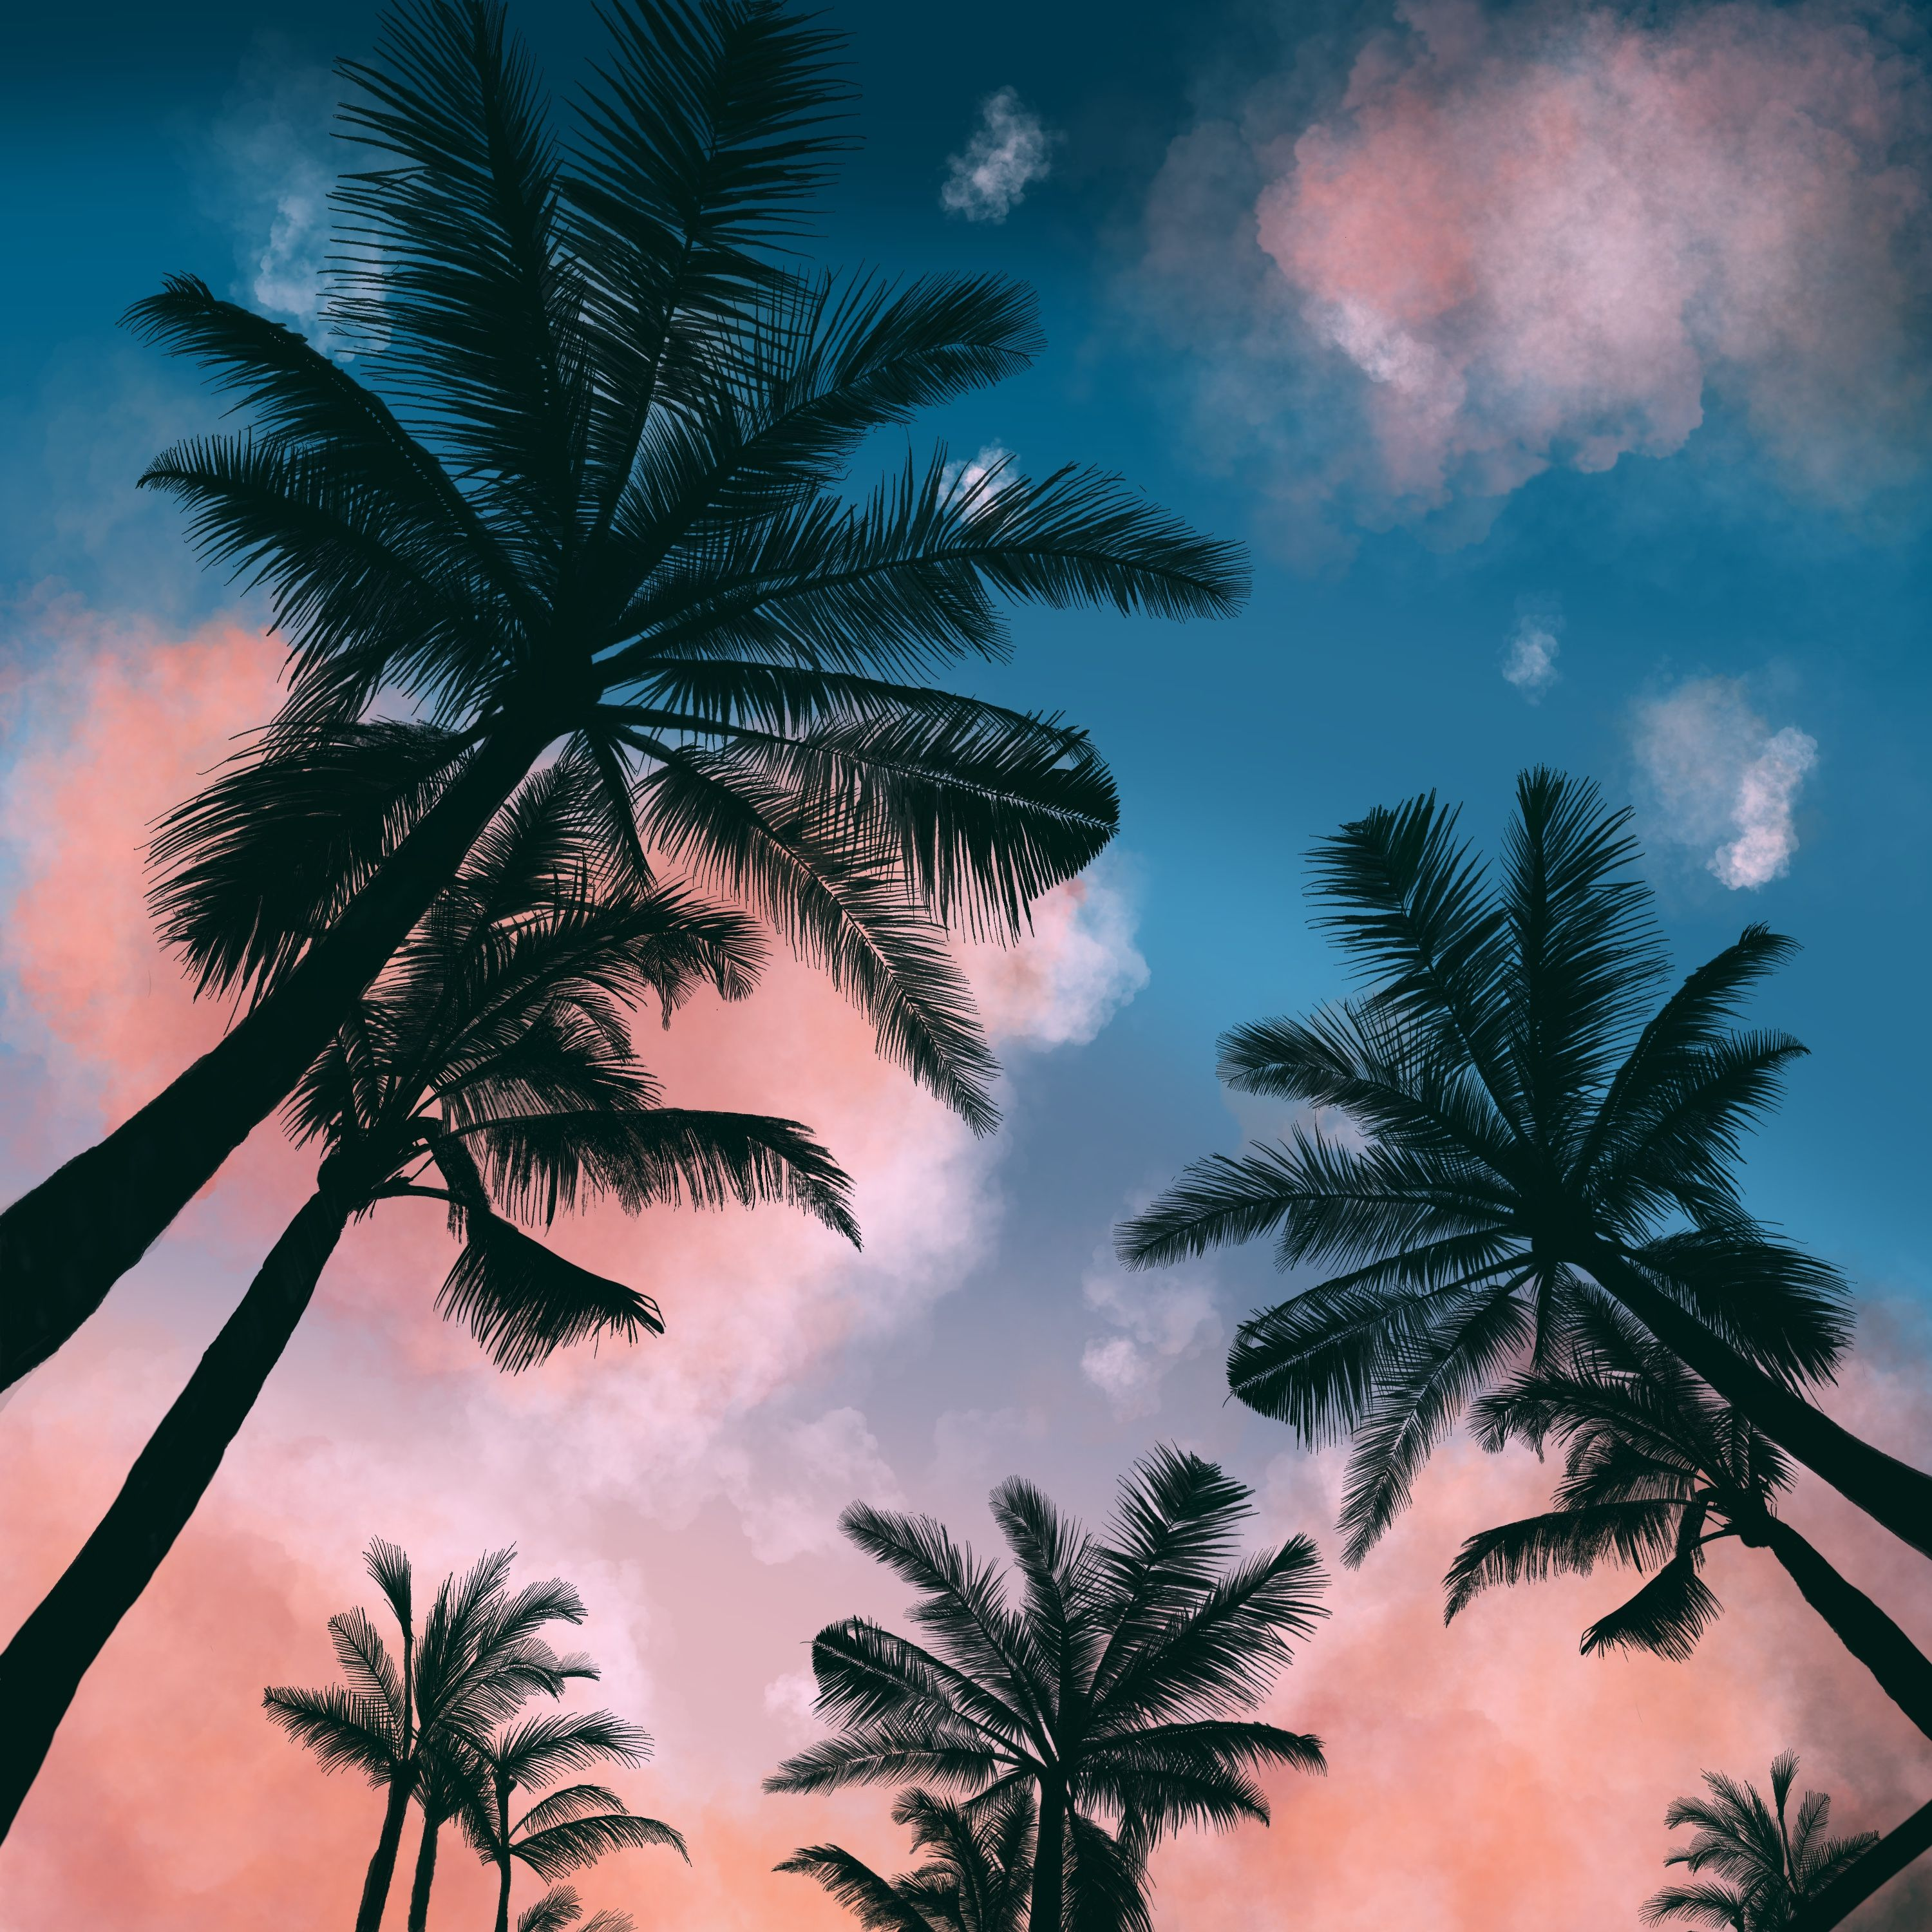 Palm Trees On Procreate Palm Tree Sunset Palm Trees Painting Aesthetic Painting Tropics palm trees sunset clouds sky